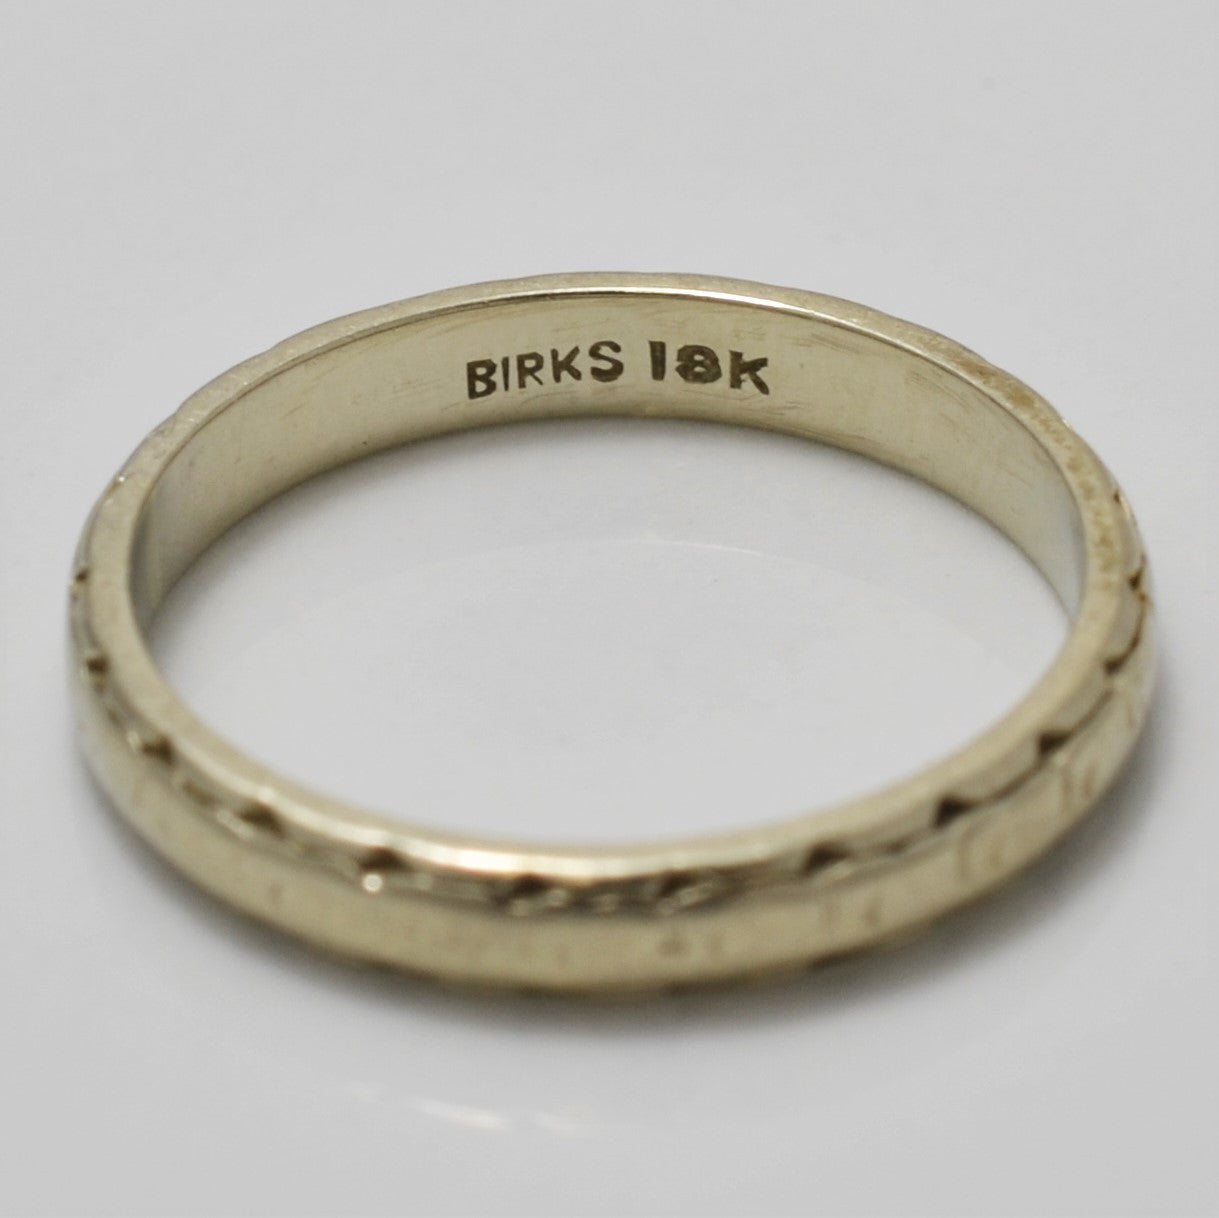 Birks 18K Wedding Band | SZ 5.5 |